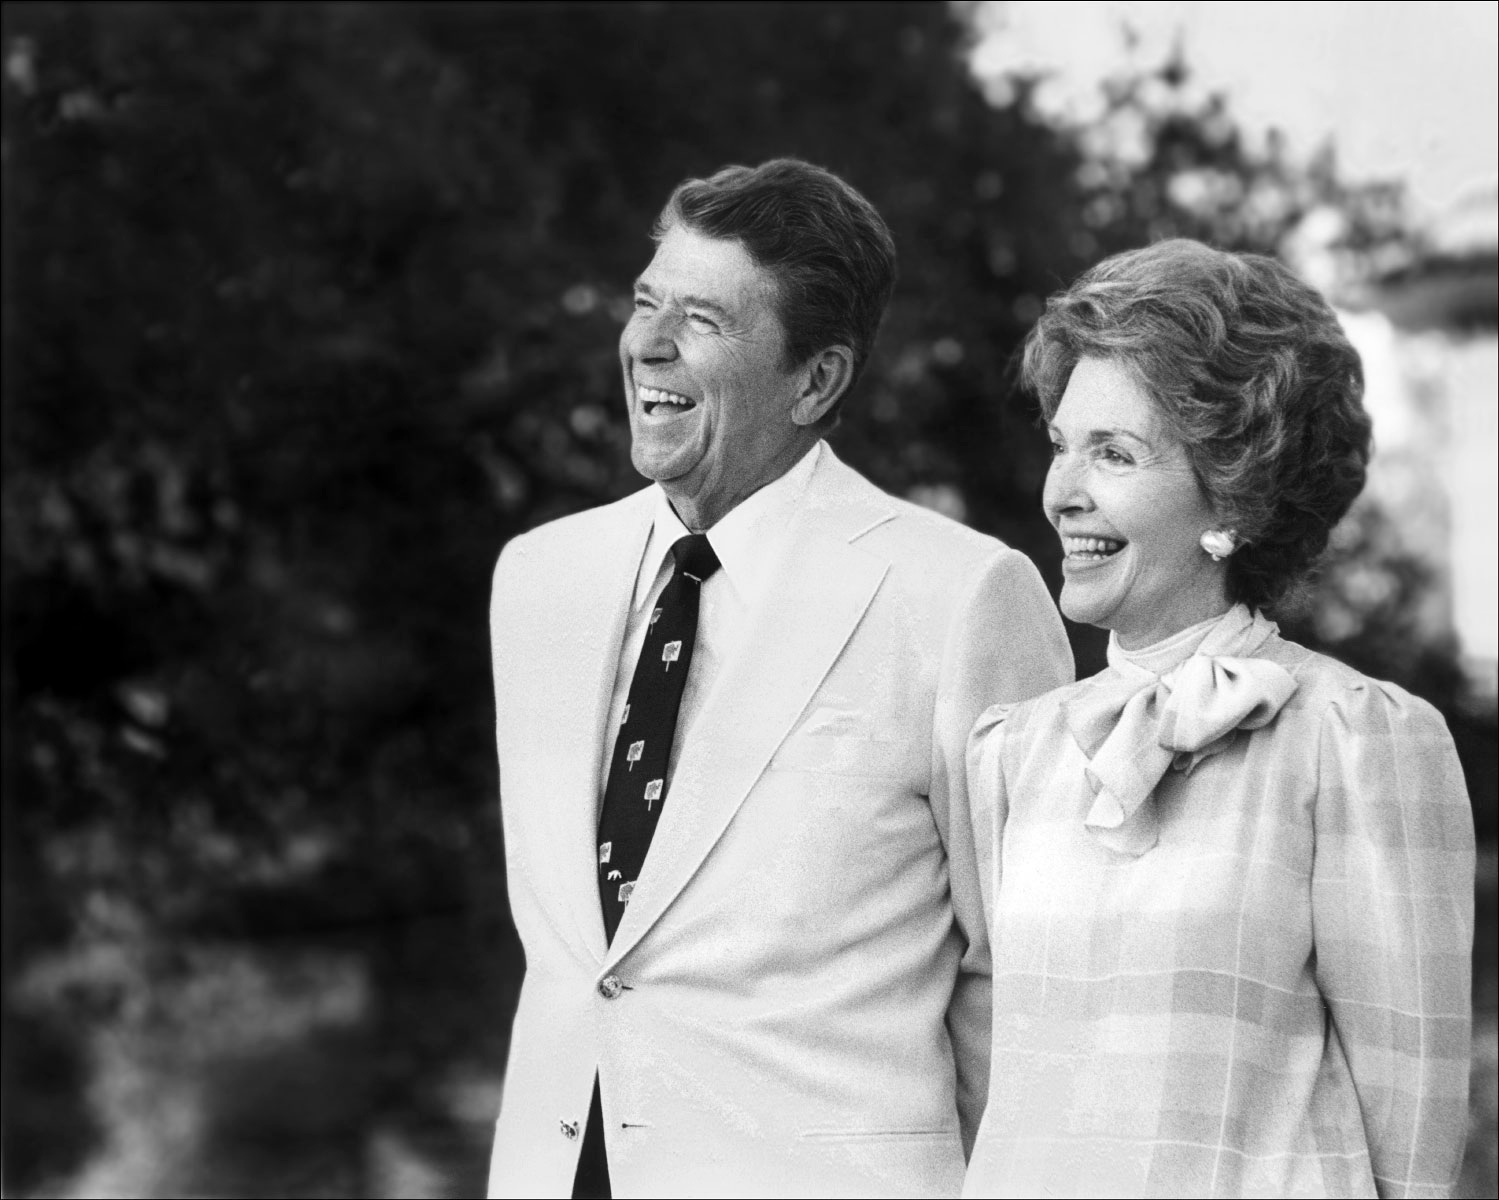 Photo of President Ronald Reagan and wife, Nancy, as they address guests at a private gathering in Hope Ranch, an exclusive enclave in Santa Barbara, California.